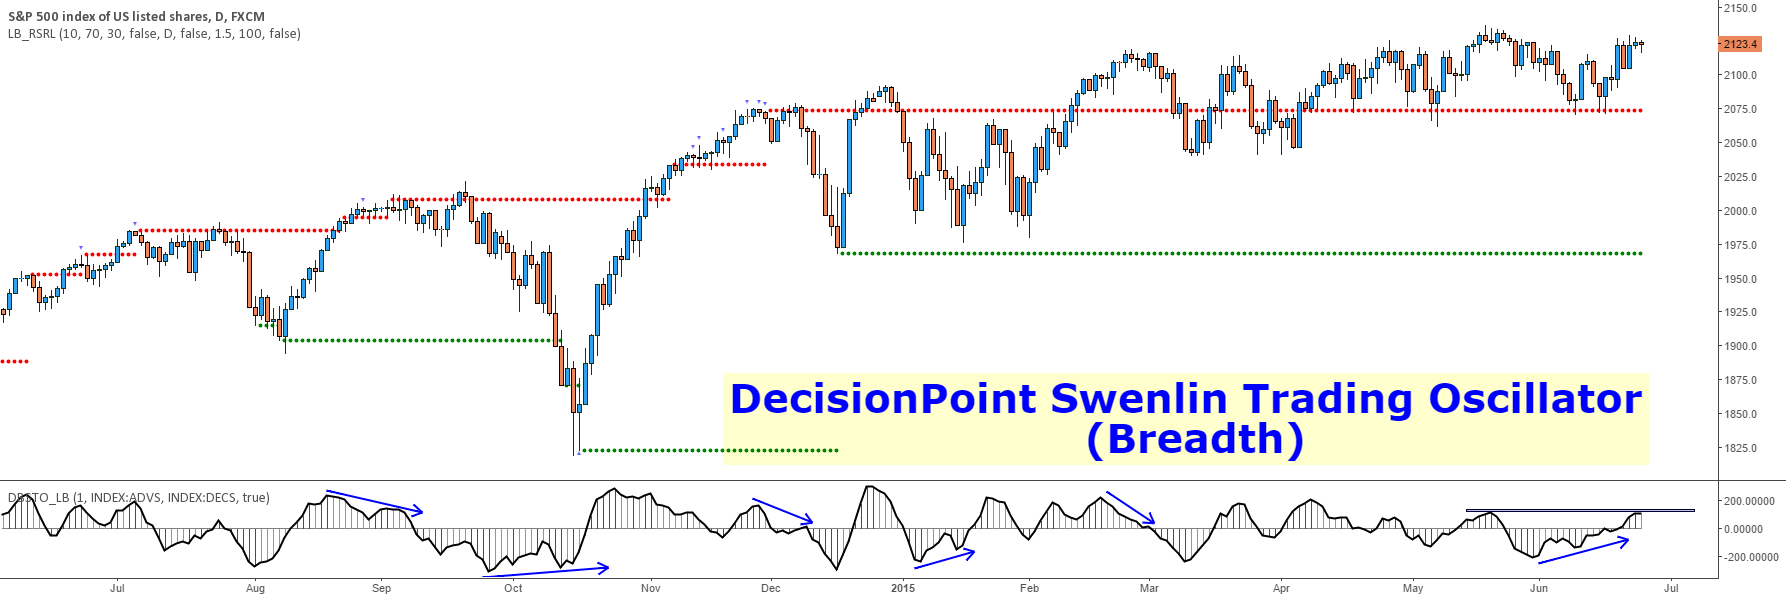 DecisionPoint Breadth Swenlin Trading Oscillator [LazyBear]